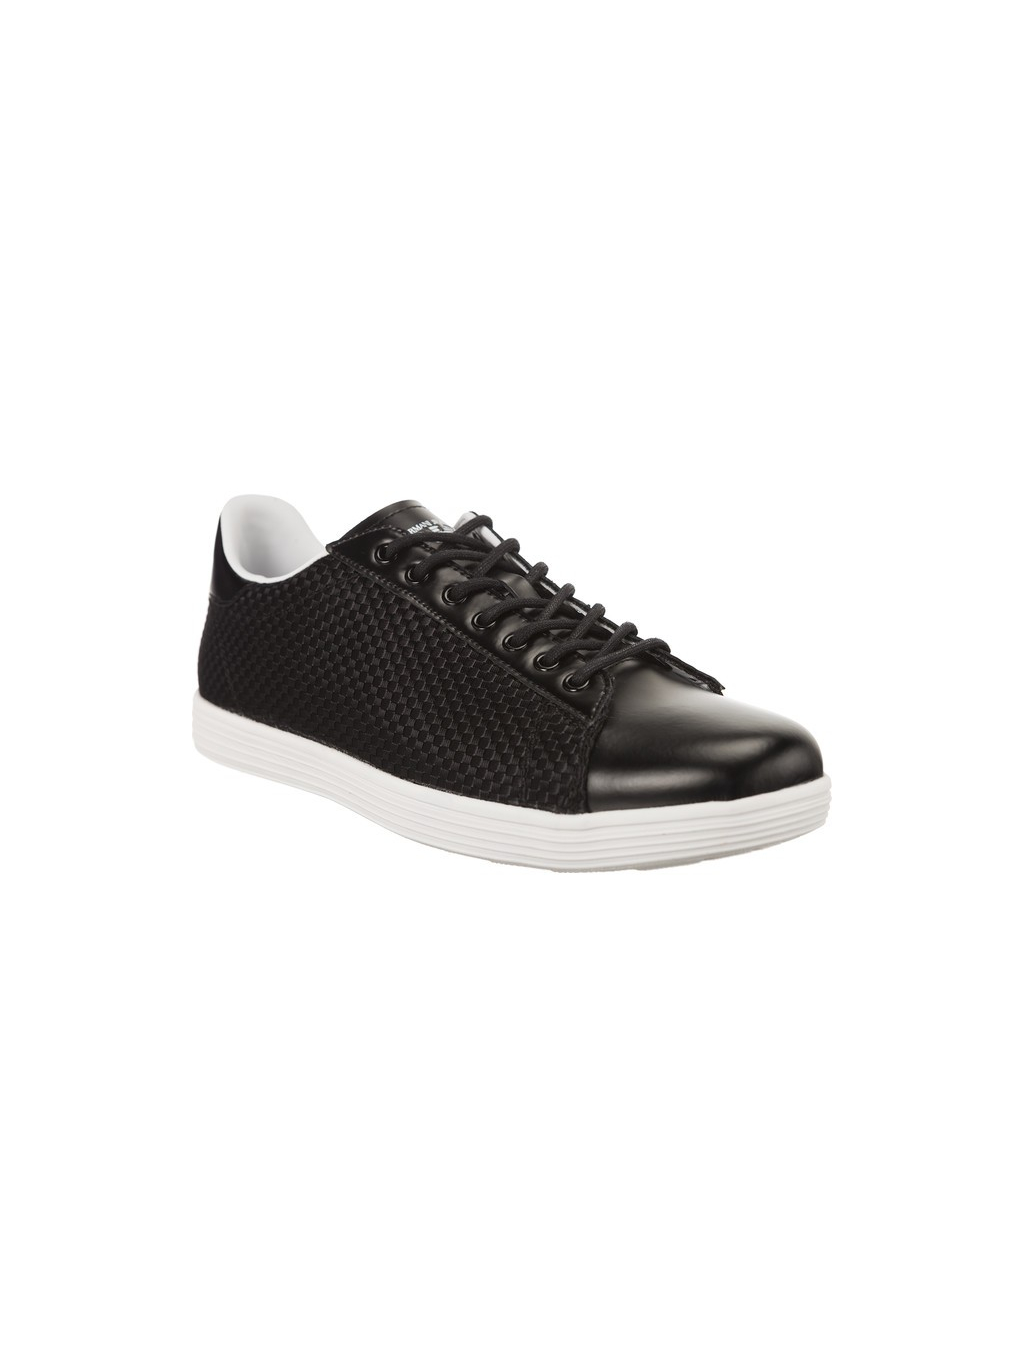 31a5f882b Luxusné topánky Armani Jeans Sneaker Nero Made in Italy